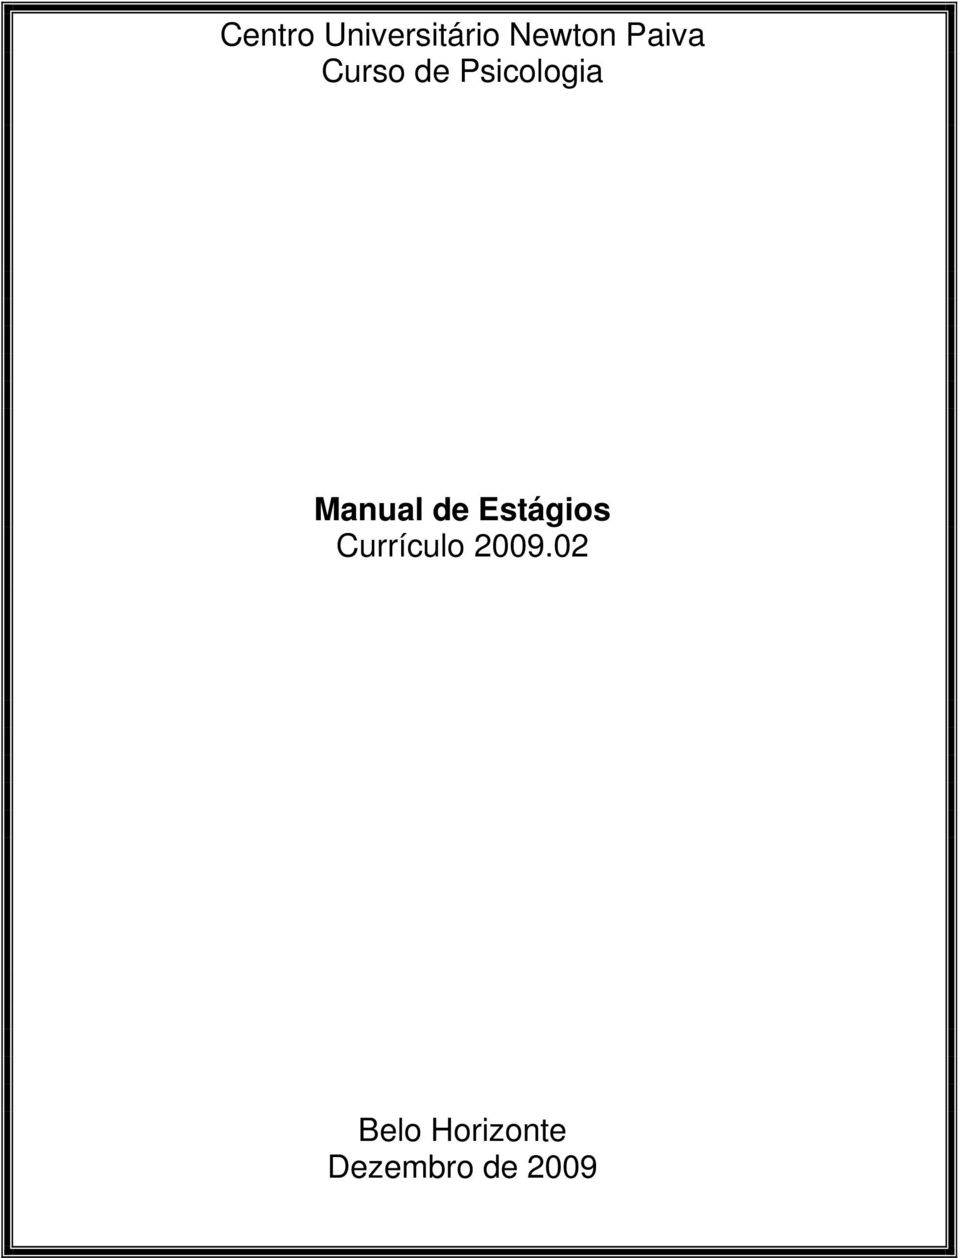 Manual de Estágios Currículo